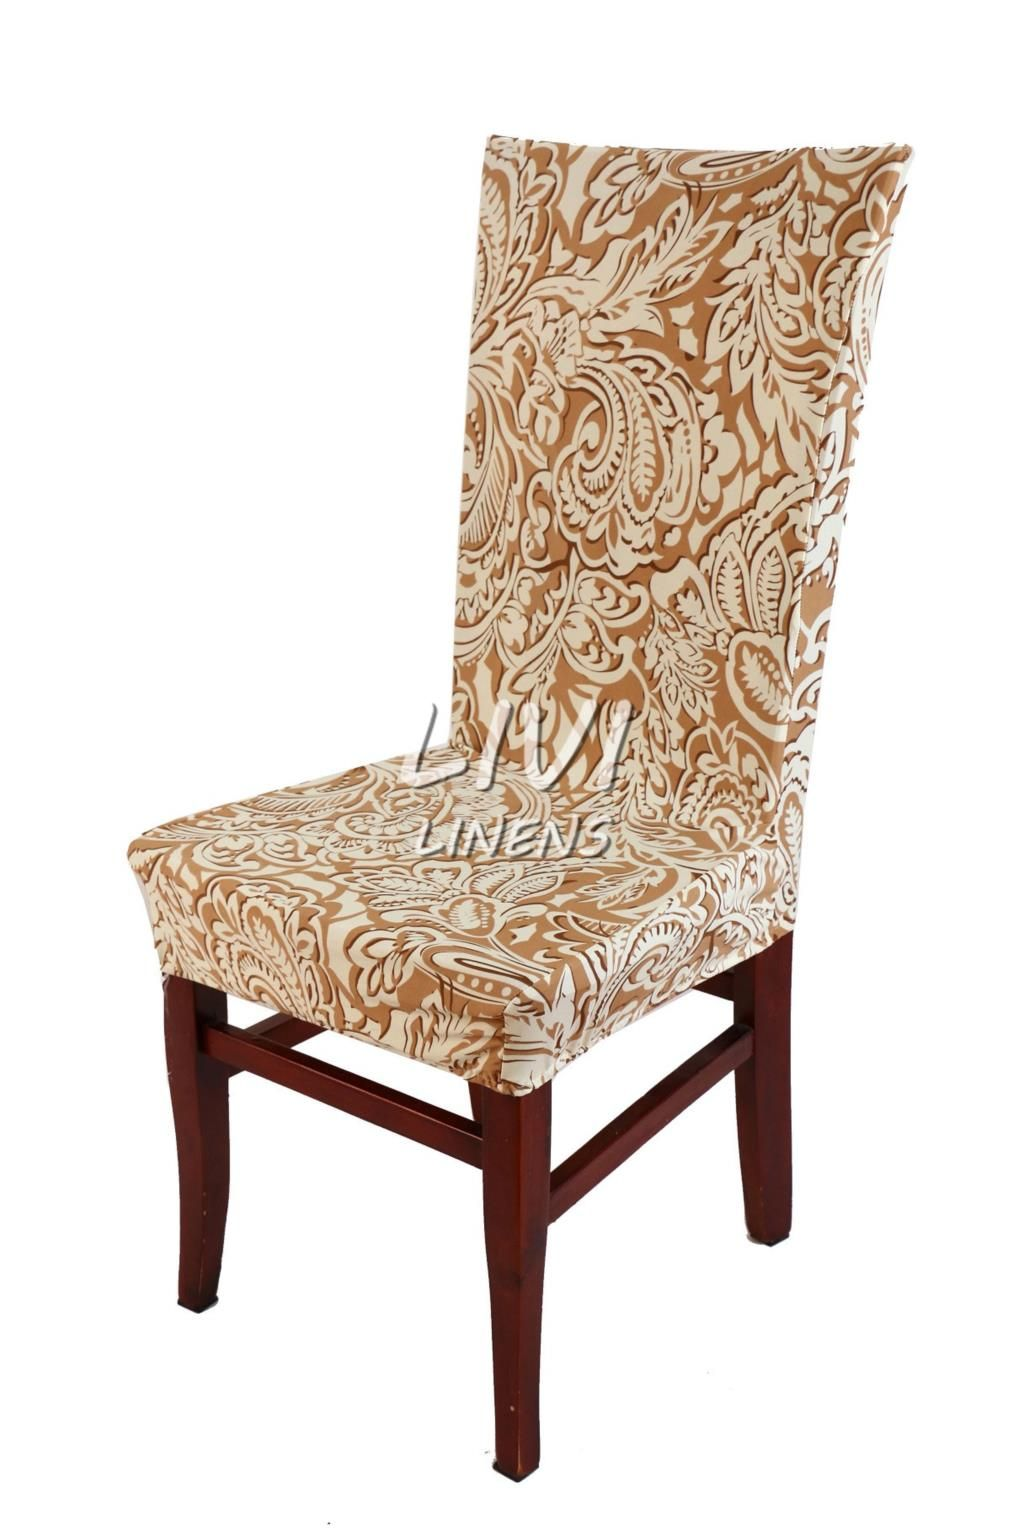 Another beautiful dining cover in cream and brown paisley fabric